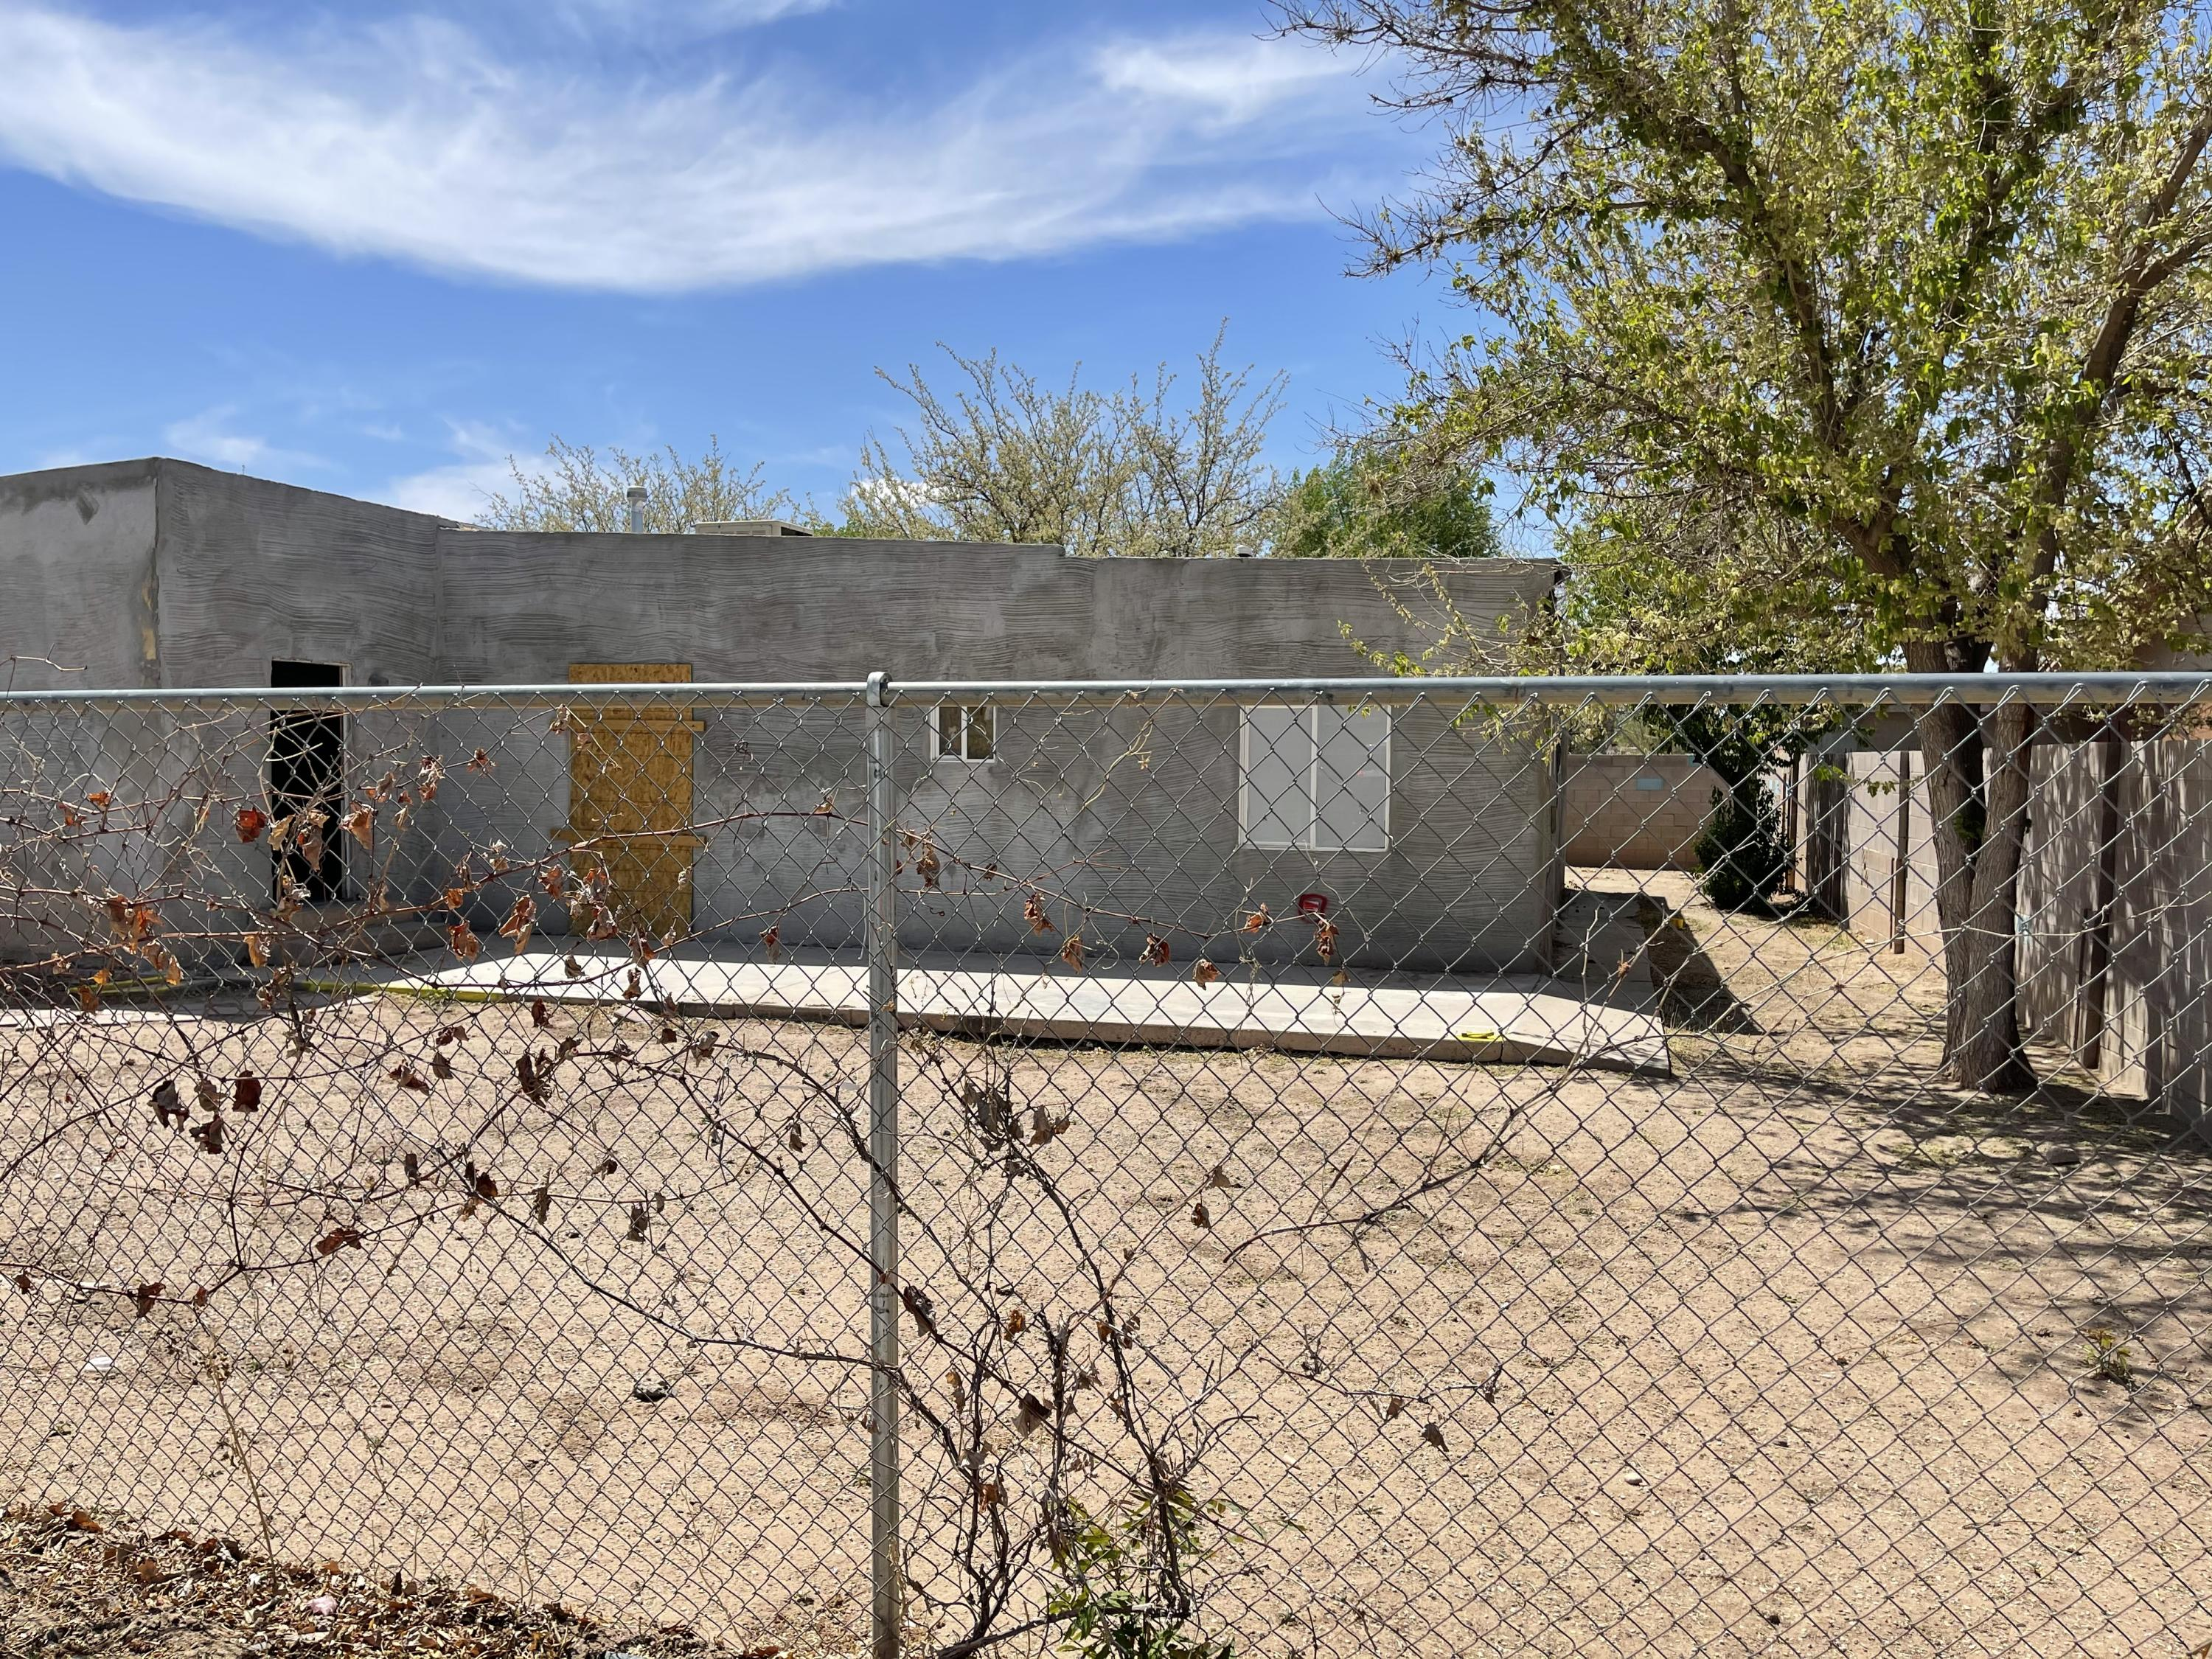 Near North Valley Investment Opportunity- fix & flip or rehab & hold! Calling all EXPERIENCED investors/handymen- perfect opportunity for serious sweat equity. Property needs A LOT of work. Home is sold as is with all defects and faults (no pre-closing repairs or utility turn-ons will be completed).